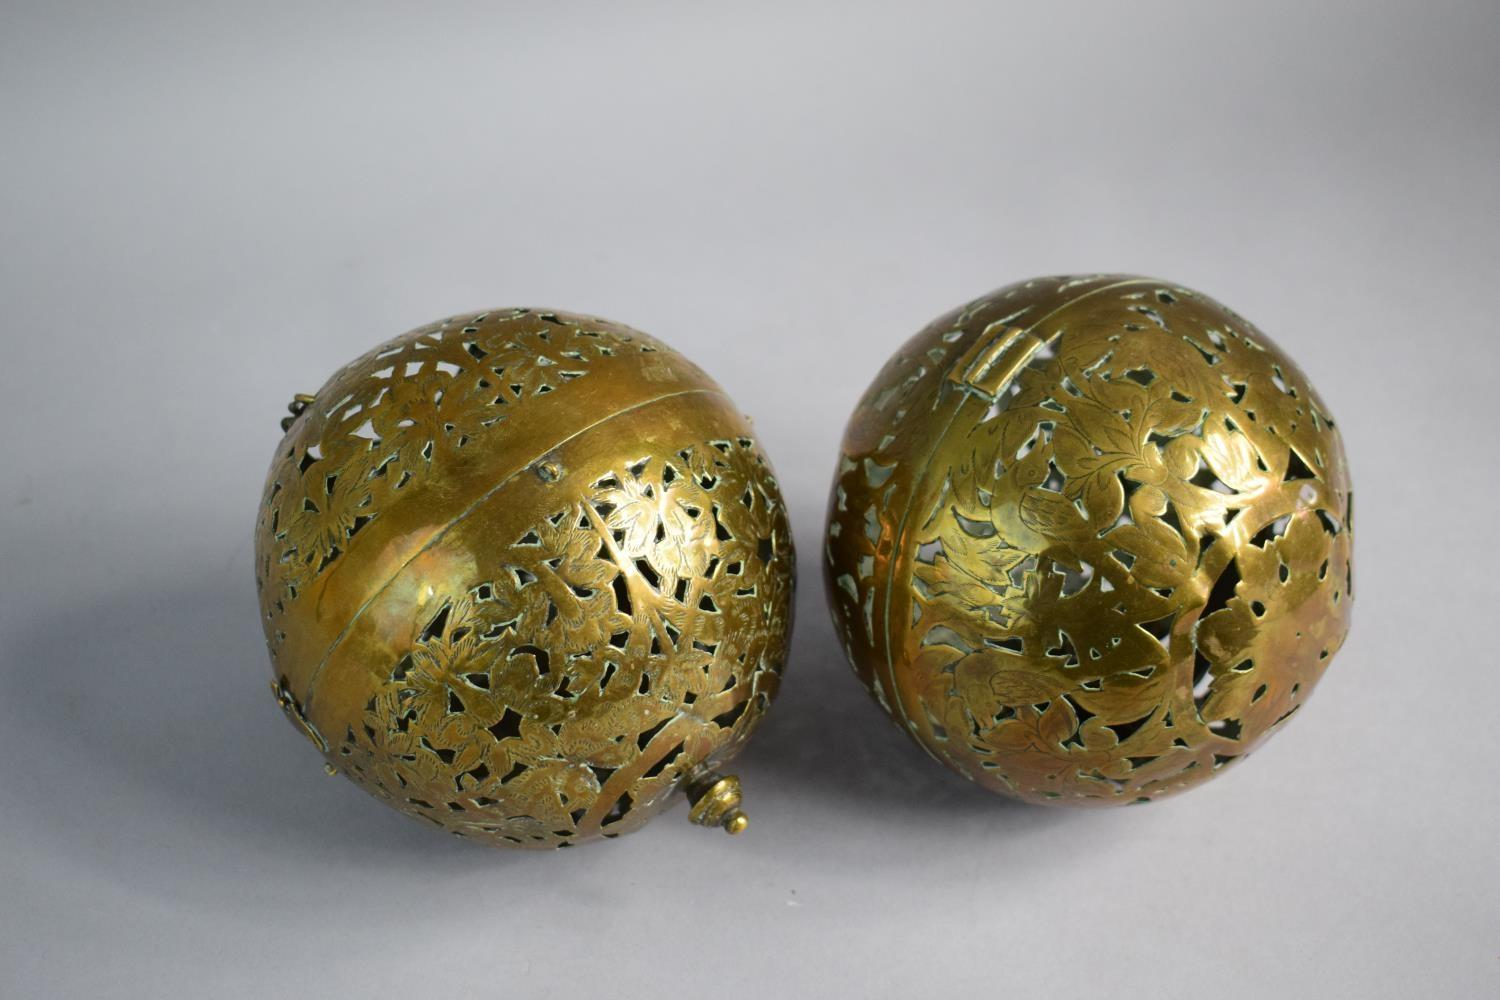 Lot 97 - A Pair of 19th Century Pierced Brass Globular Candle Holders with Hinged Joint and Bird